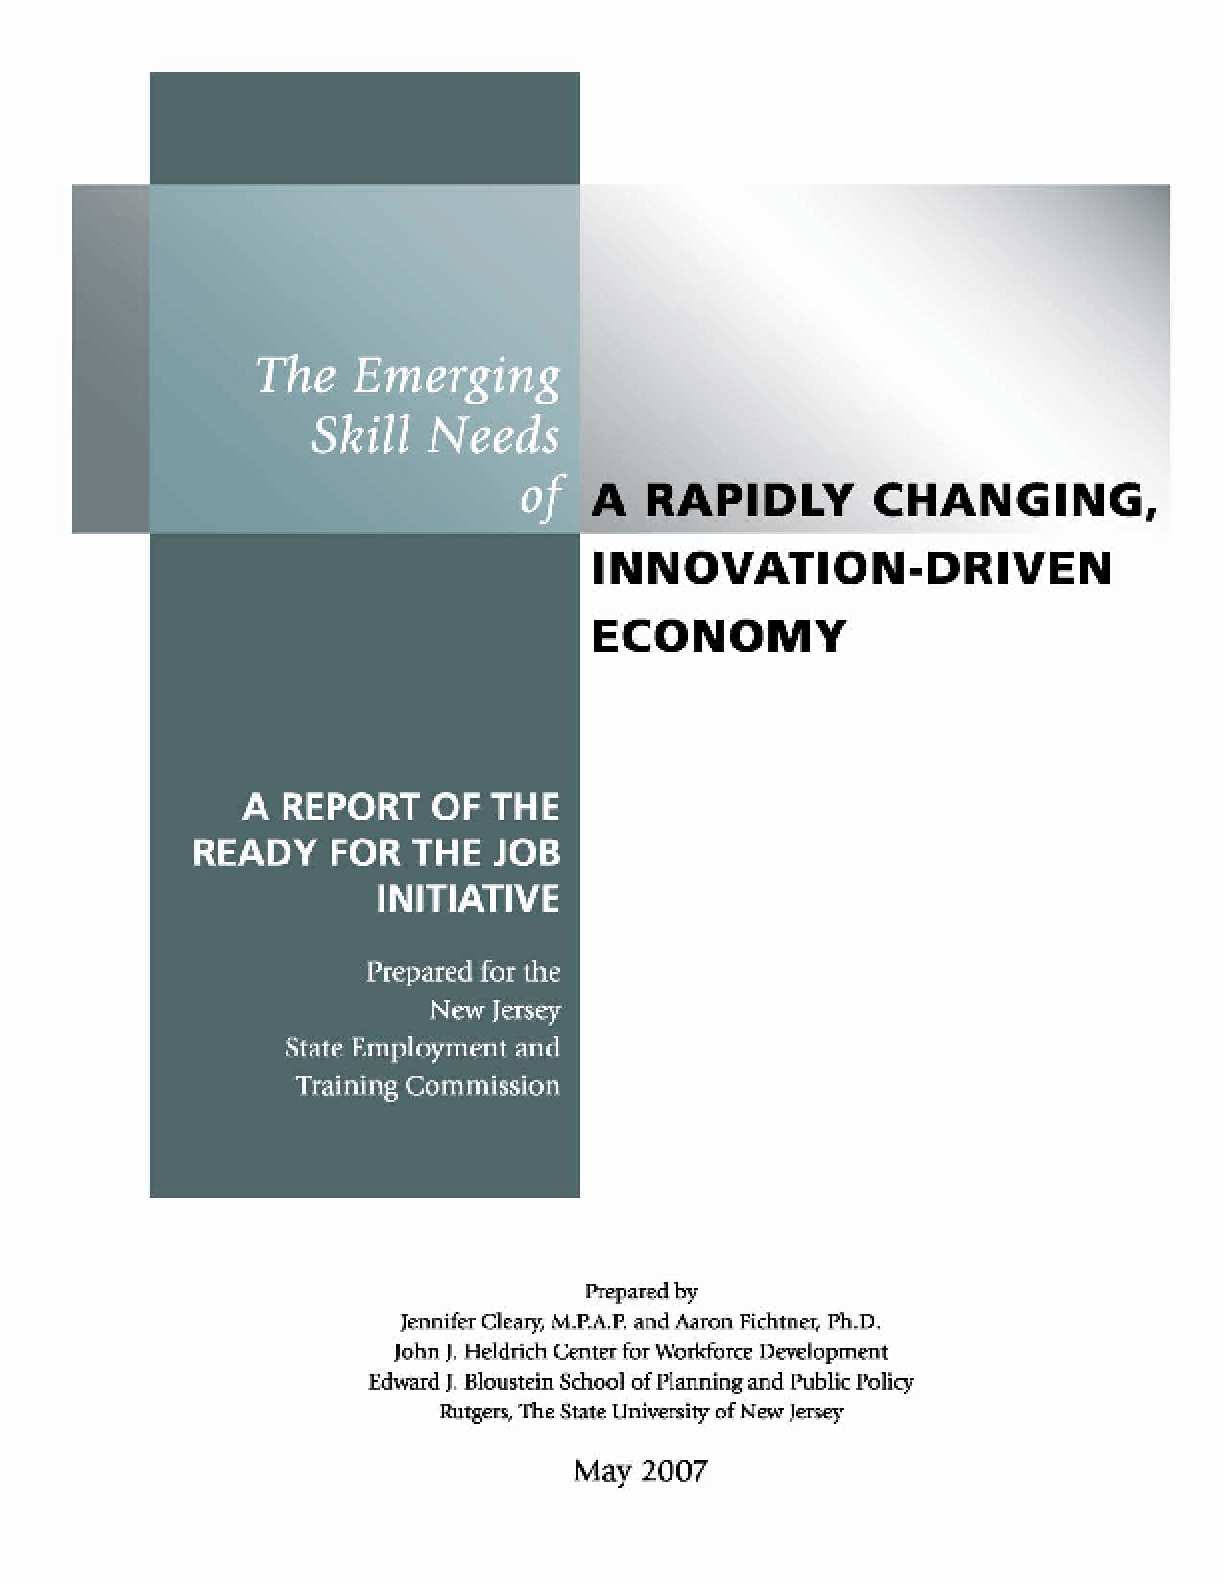 The Emerging Skill Needs of a Rapidly Changing, Innovation-Driven Economy